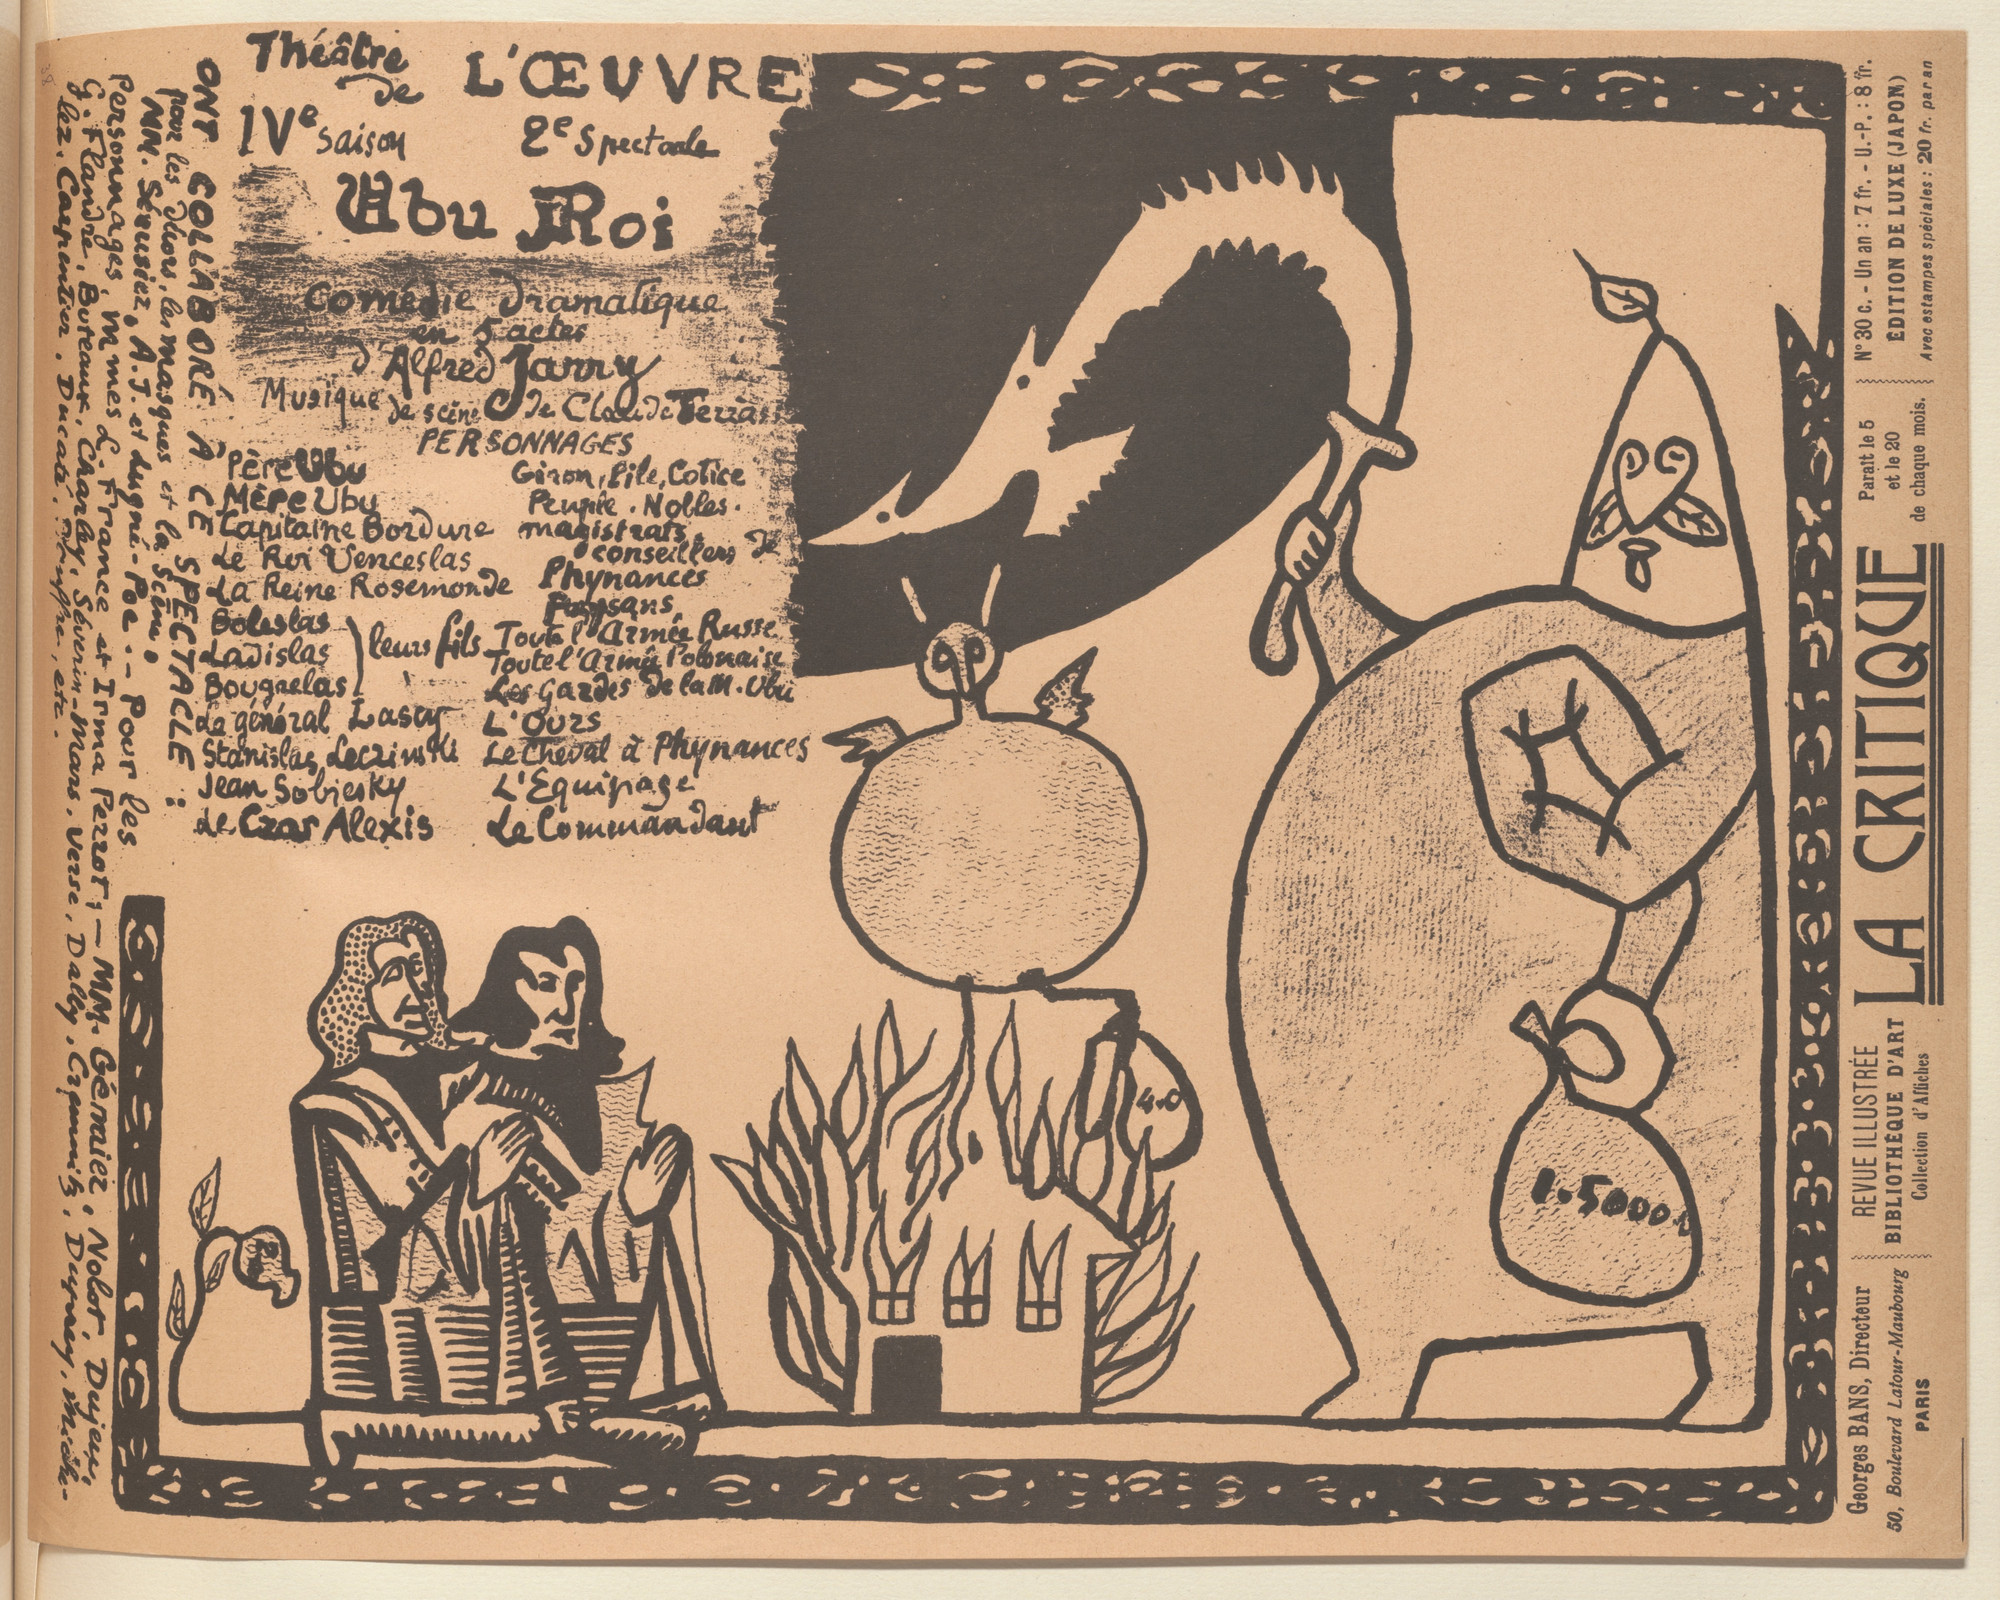 Alfred Jarry. Program for King Ubu (Ubu roi) from The Beraldi Album of Theatre Programs. 1896